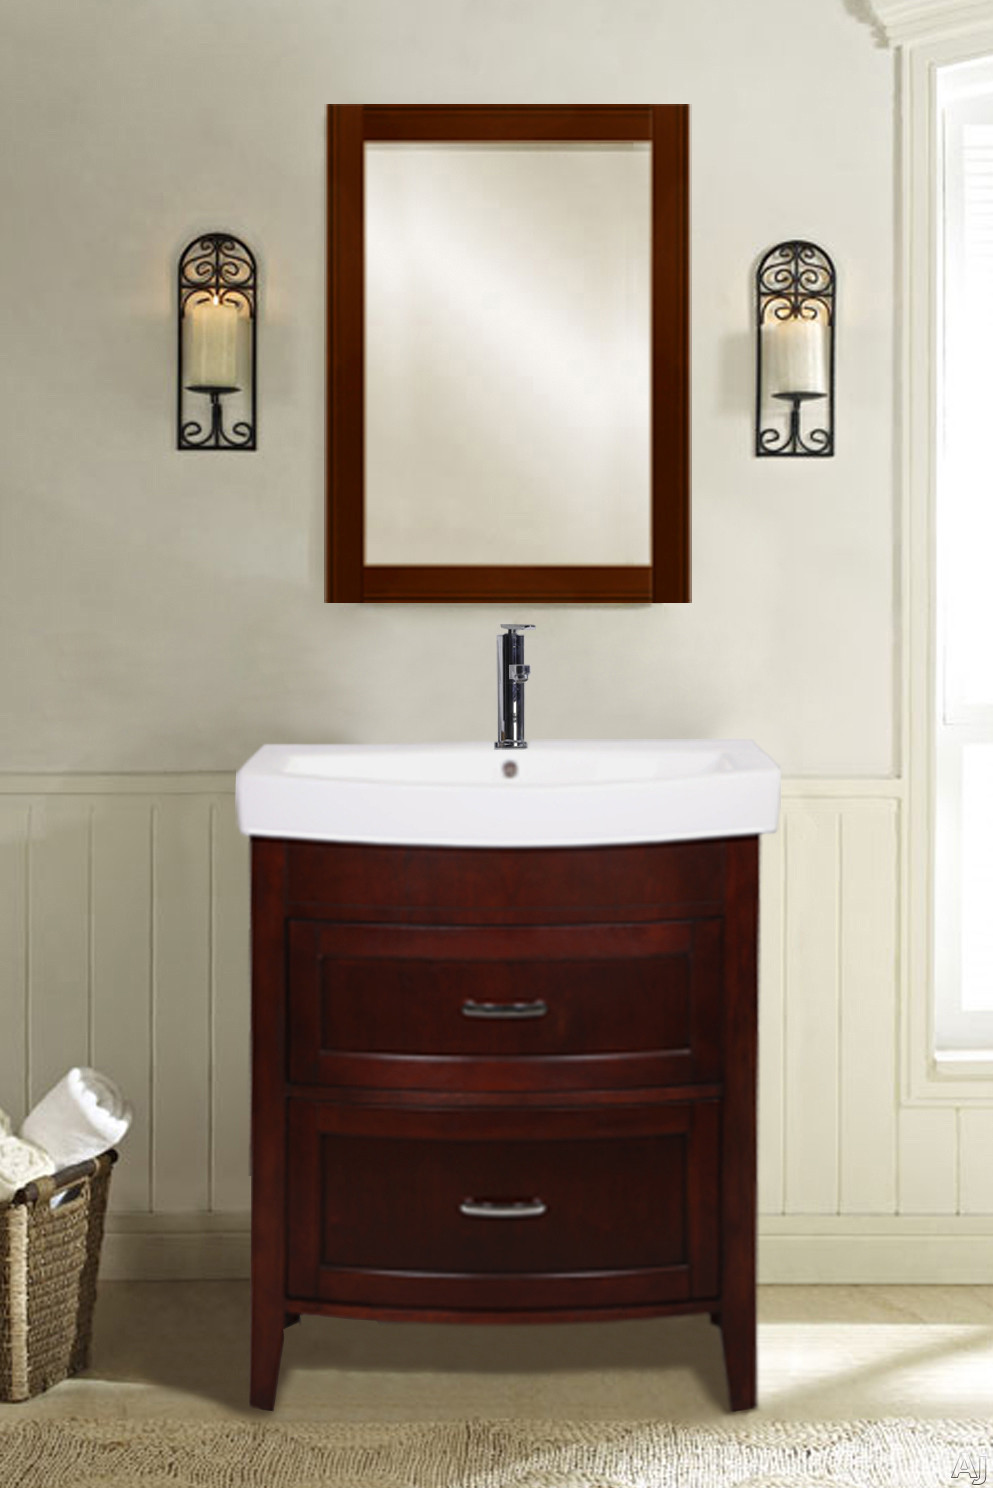 Empire Industries Arch Collection A2102B 20 Inch Freestanding Vanity with 2 Drawers for Your Royale Collection Ceramic Drop In Bathroom Sink Black